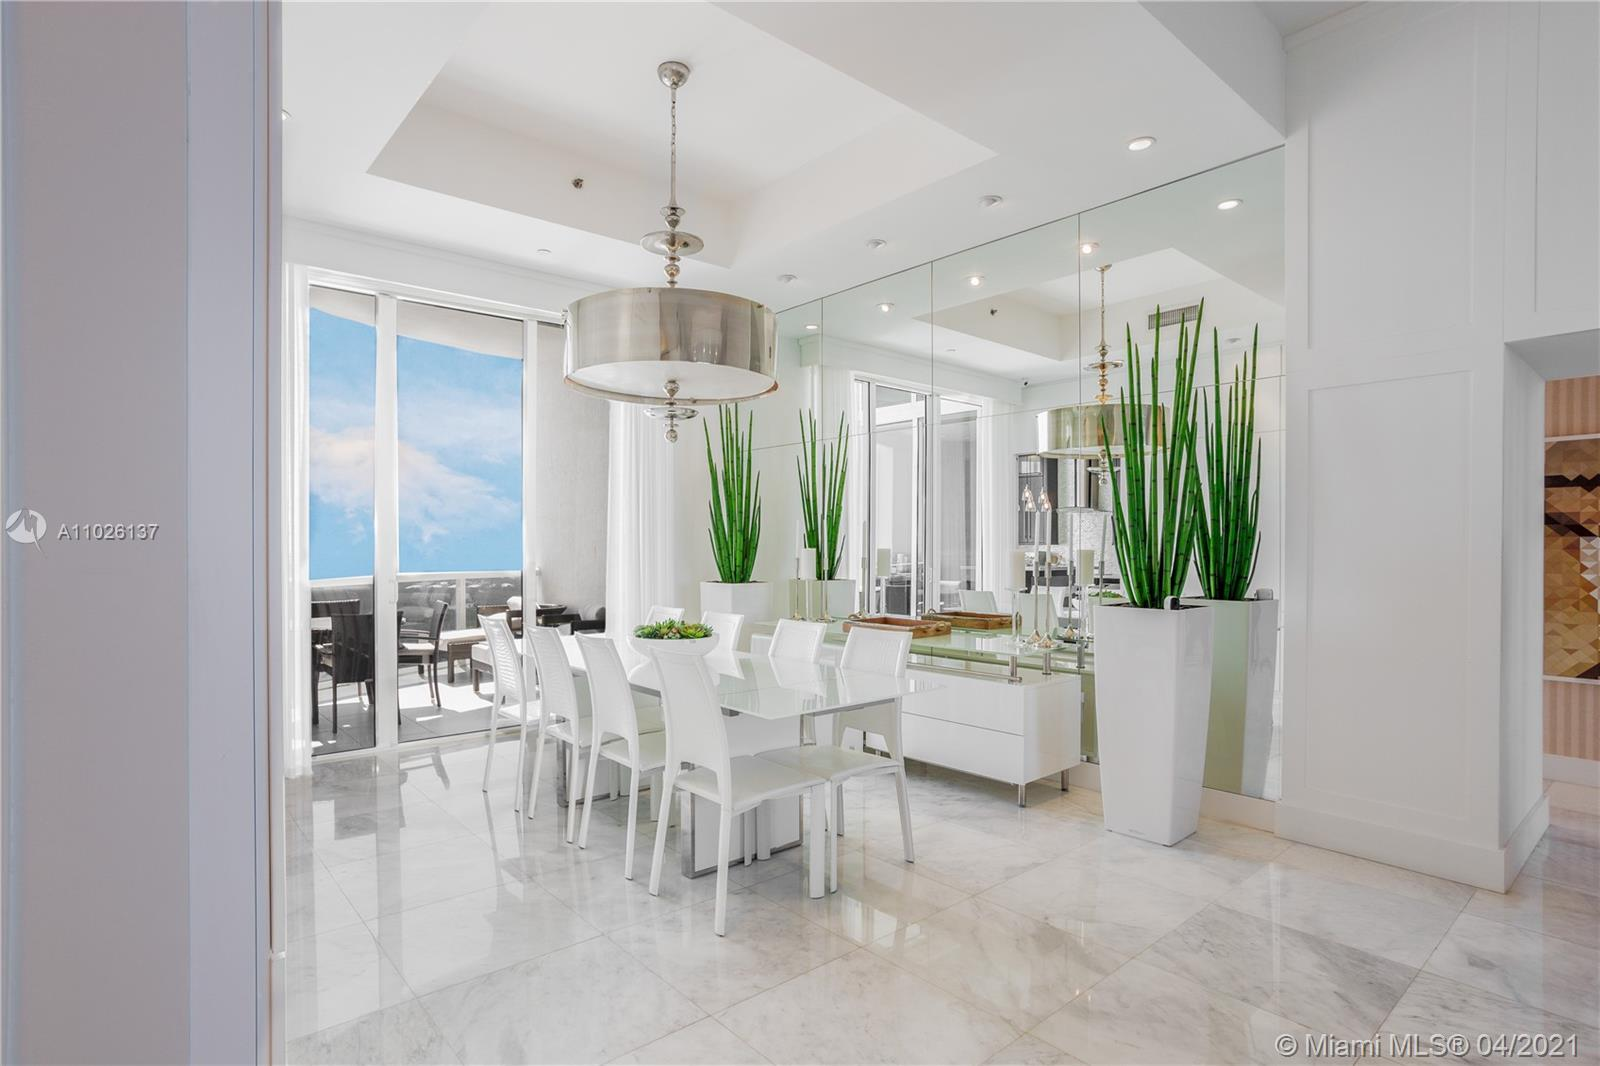 """BREATHTAKING DIRECT OCEAN, INTRACOASTAL AND CITY VIEWS. PROFESSIONALLY DECORATED 3 BED & 3.5 BATH. EAST TO WEST FLOW THRU UNIT 12"""" CEILINGS. APARTMENT COMES WITH AUTOMATED SISTEM BY CRESTON,  CONTROLS LIGHTS, SHADES AND AIR CONDITION. THIS APARTMENT HAS  TOP OF THE LINE APPLIANCES,ITALIAN KITCHEN, WINE COOLER & BUILT IN ESPRESSO MACHINE. STATE OF THE ART GYM/SPA, POOL SERVICE, RESTAURANT IN THE BUILDING, BUSINESS CENTER. CLOSE TO BAL HARBOUR SHOPS, AVENTURA MALL."""